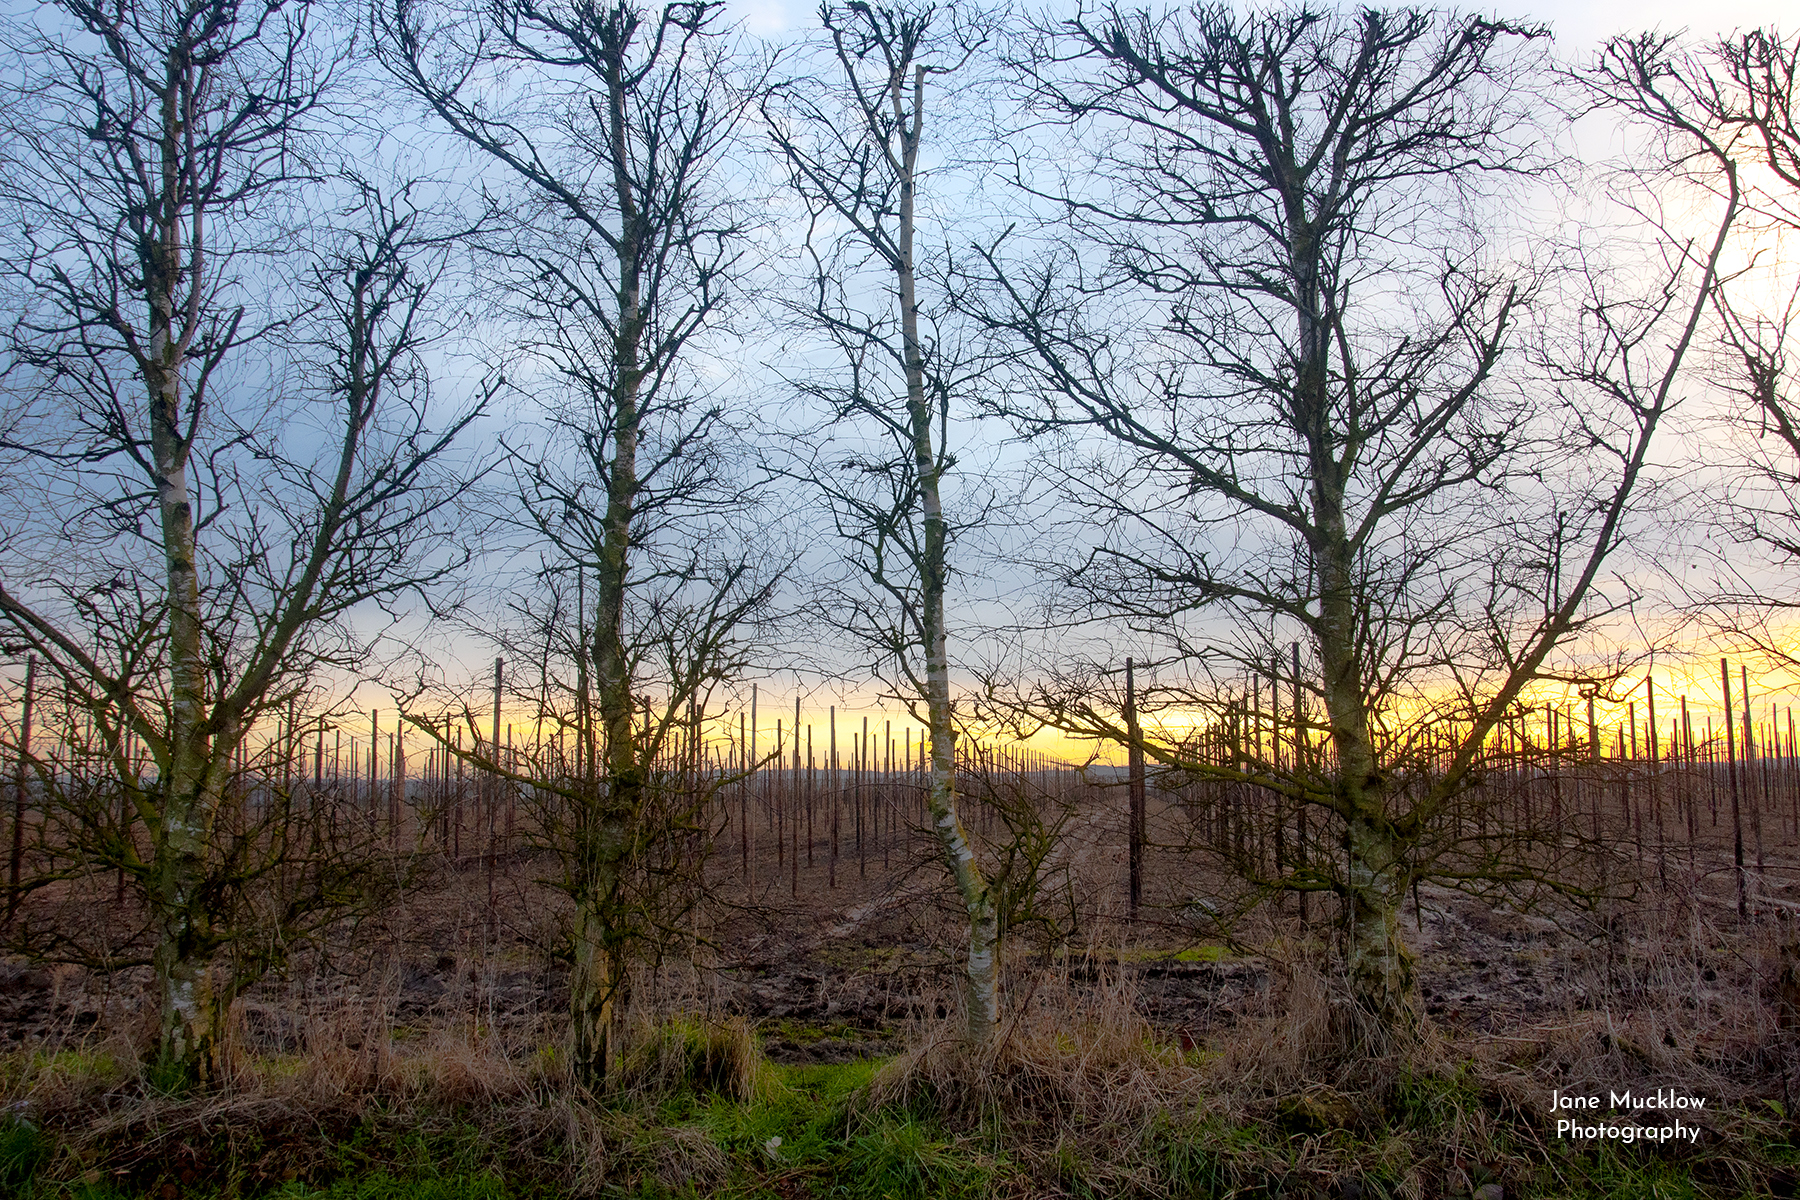 Photo by Jane Mucklow of a Winter sunset through the trees and orchard, Tonbridge